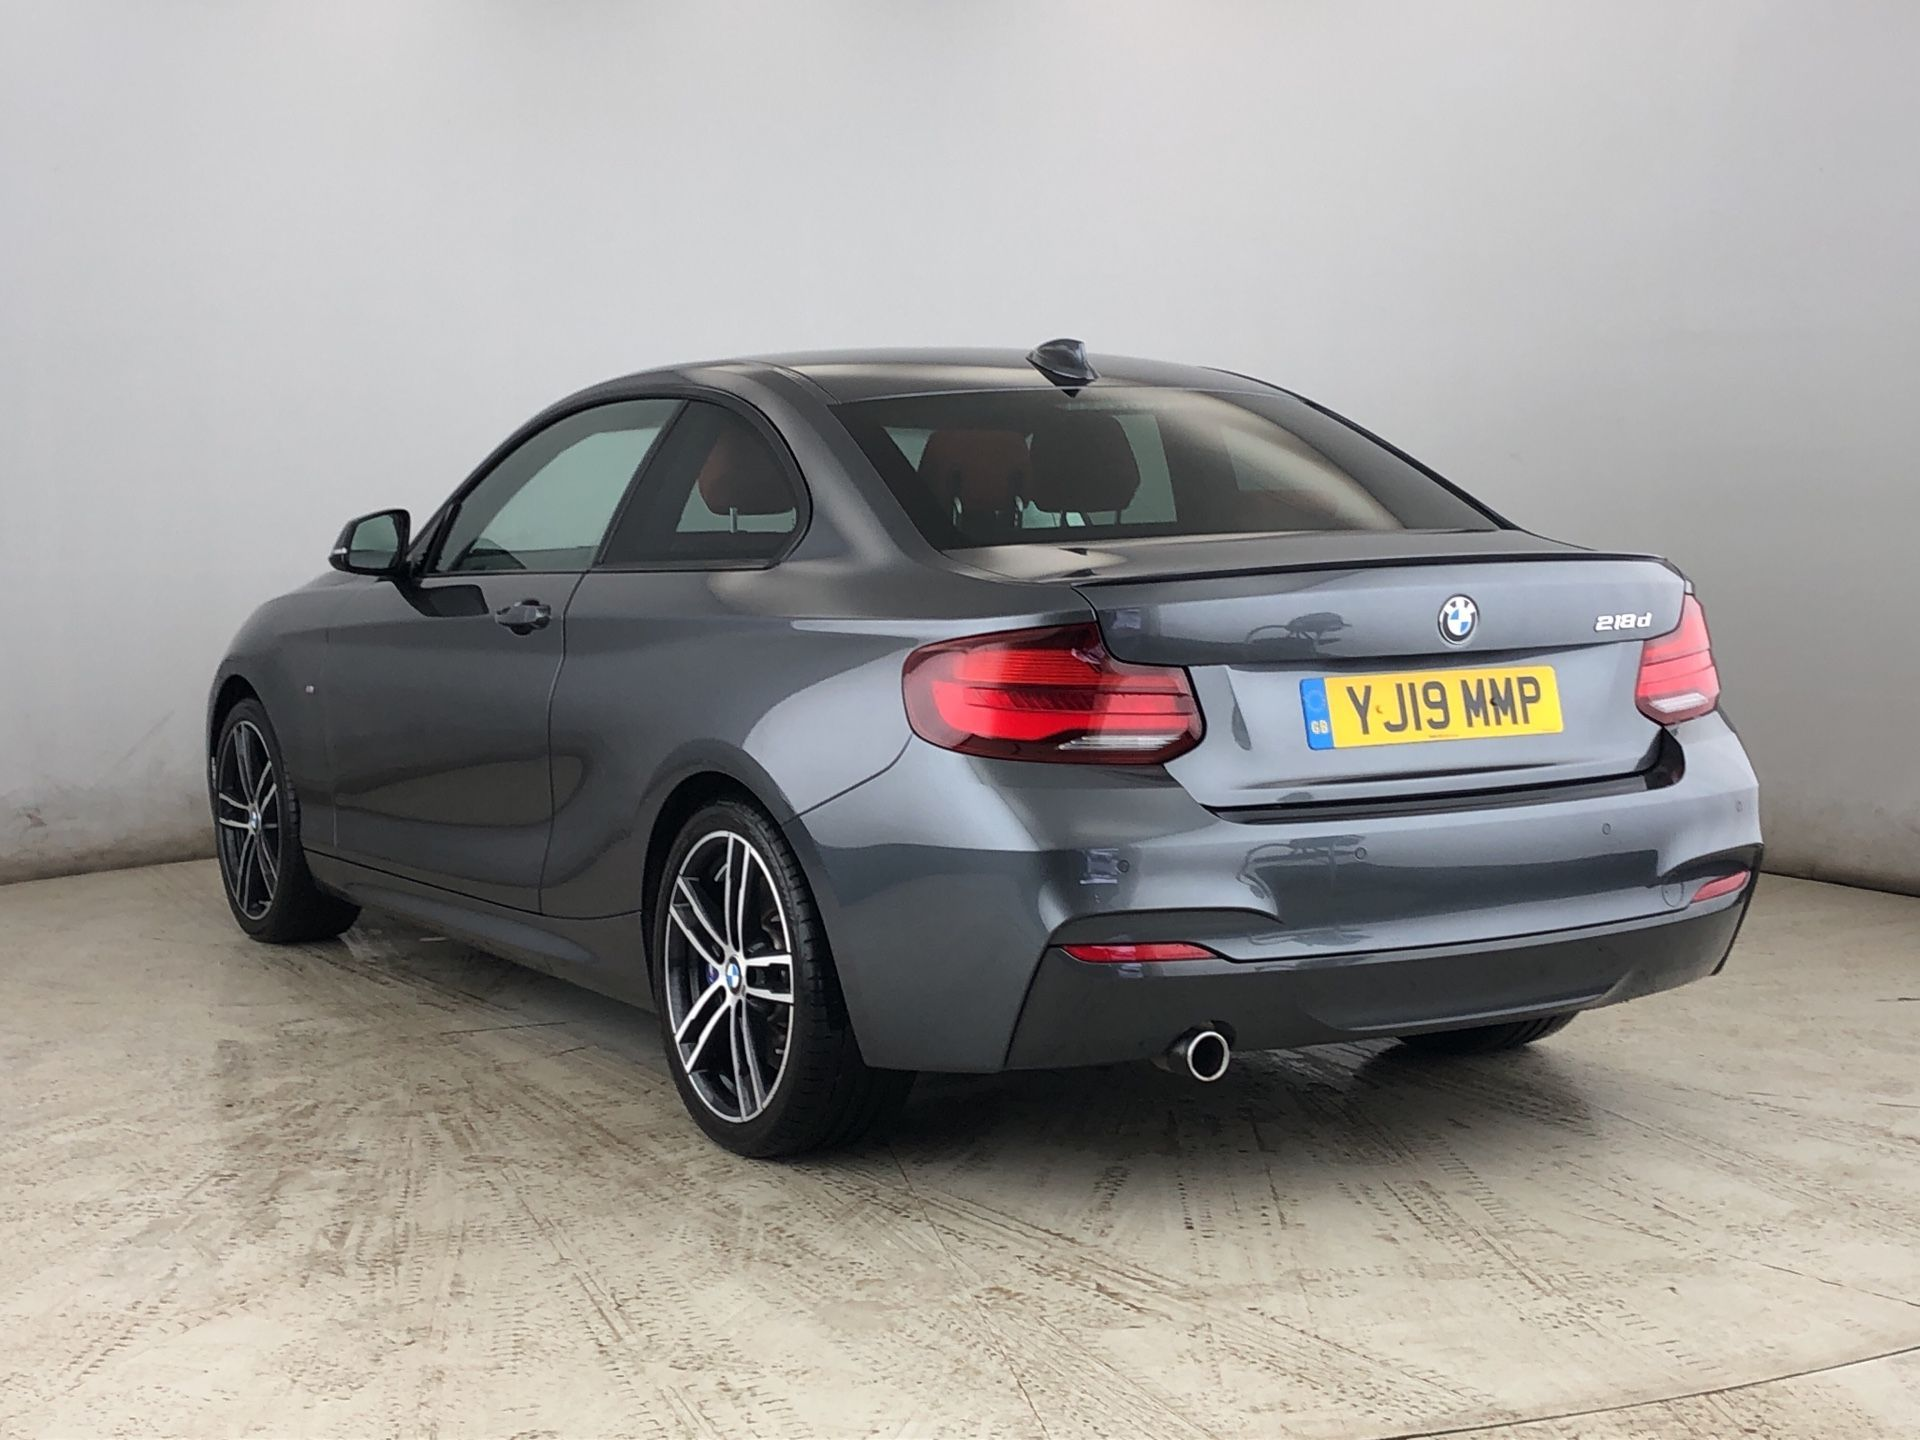 Image 2 - BMW 218d M Sport Coupe (YJ19MMP)